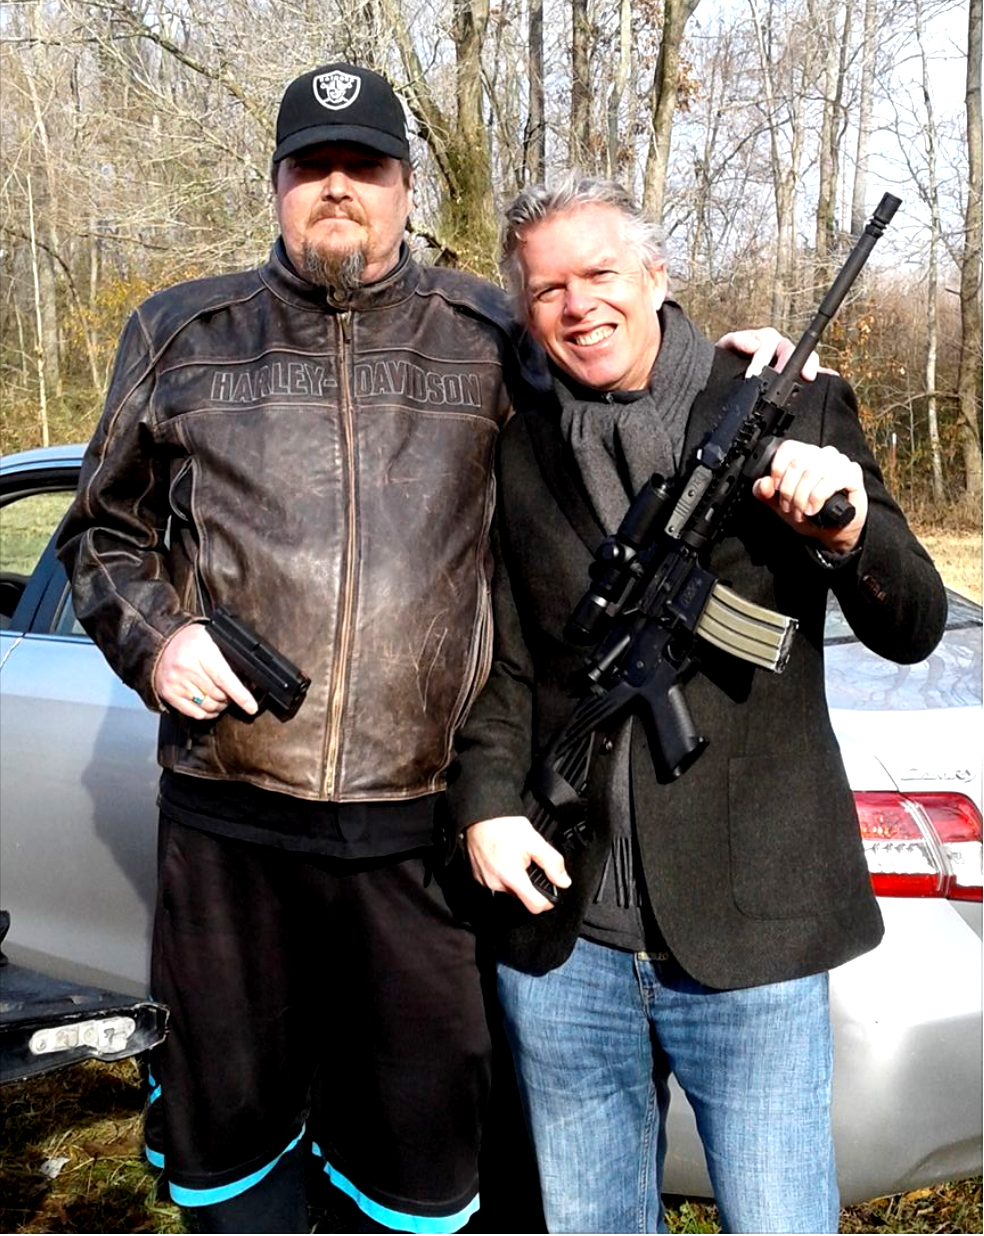 Me, looking entirely out of place, with my cousin and close childhood friend Bruce on the first   trip to Paris, Tennessee.  (I loved it, but politely declined the   AR-15 with Bumpstock for future trips)